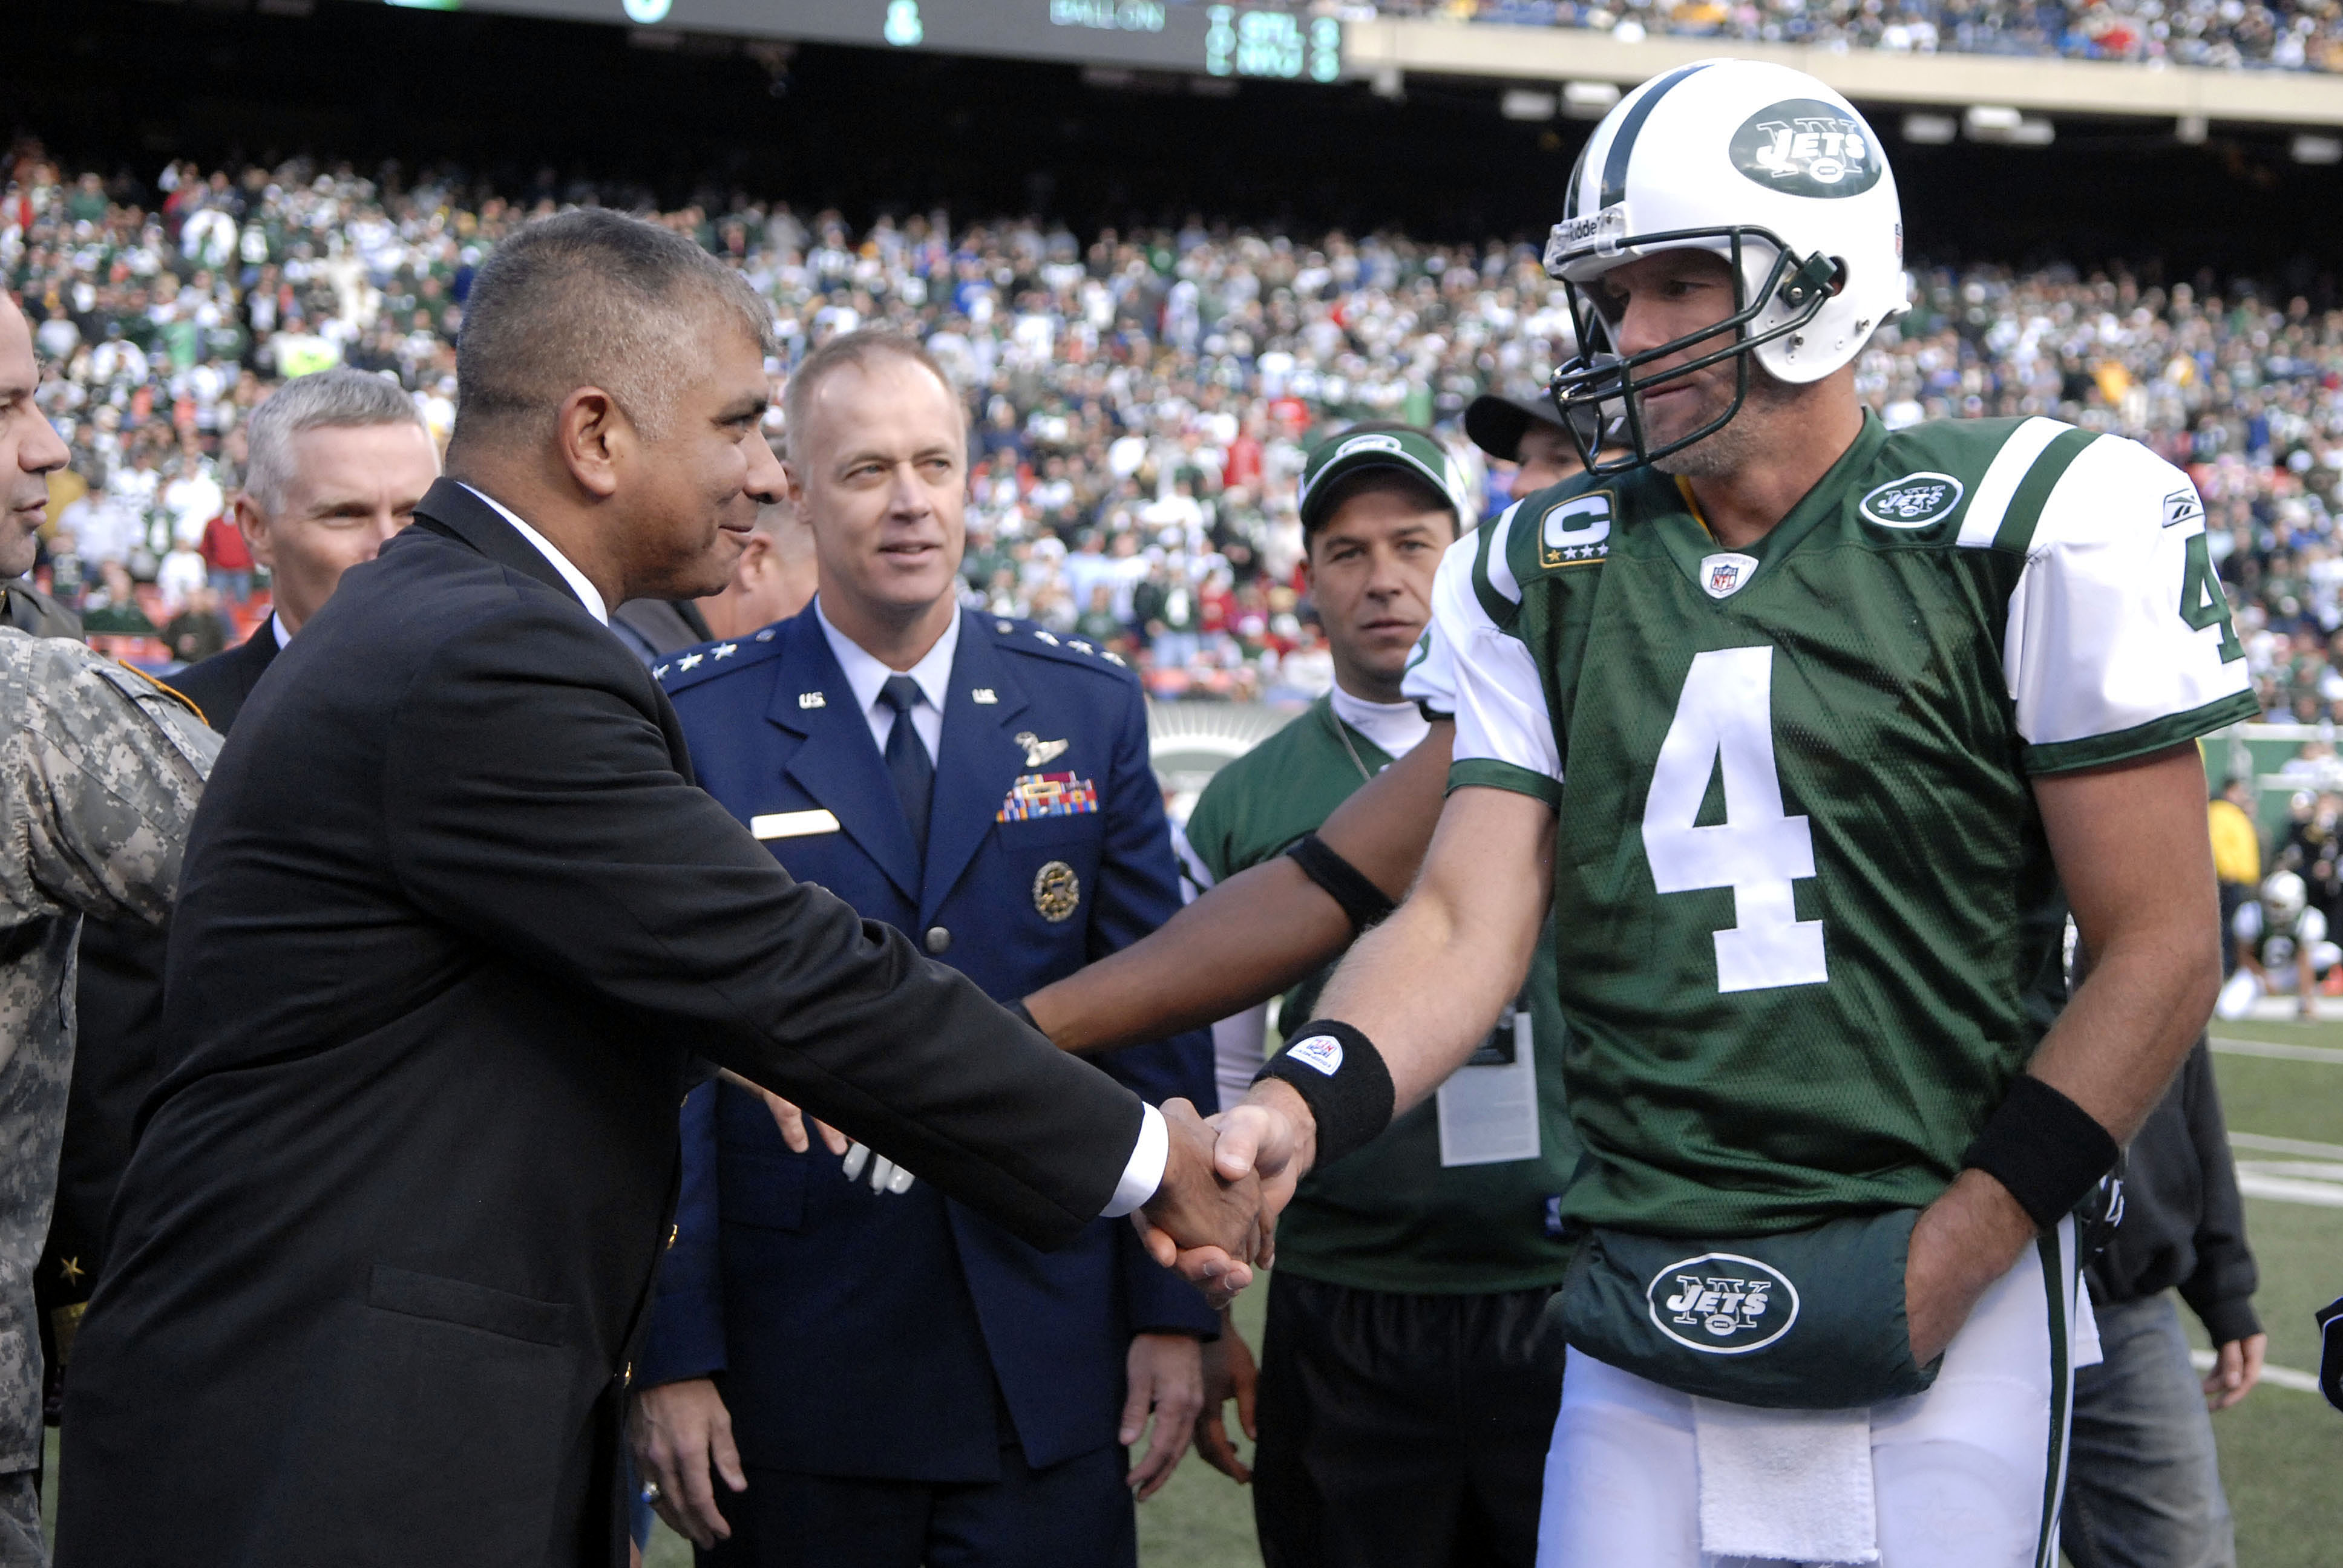 brett favre essay Hall of fame qb brett favre spoke in an interview about current green bay packers qb aaron rodgers and how they now share a similar veteran mindset.